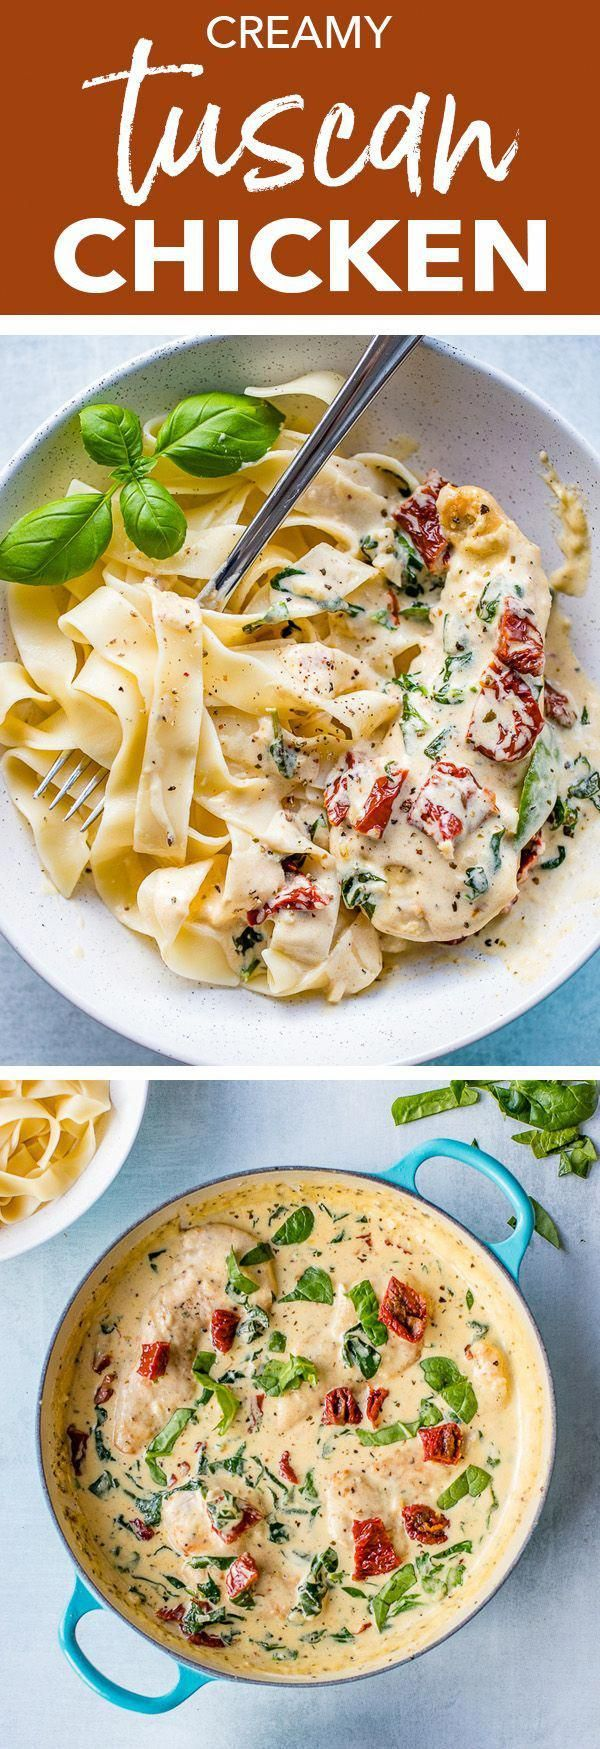 A restaurant-quality meal on the table in less than 30 minutes - creamy Tuscan chicken with fresh garlic, spinach, and sun-dried tomatoes is as easy as it is delicious, and as perfect for busy weeknights as it is for entertaining.